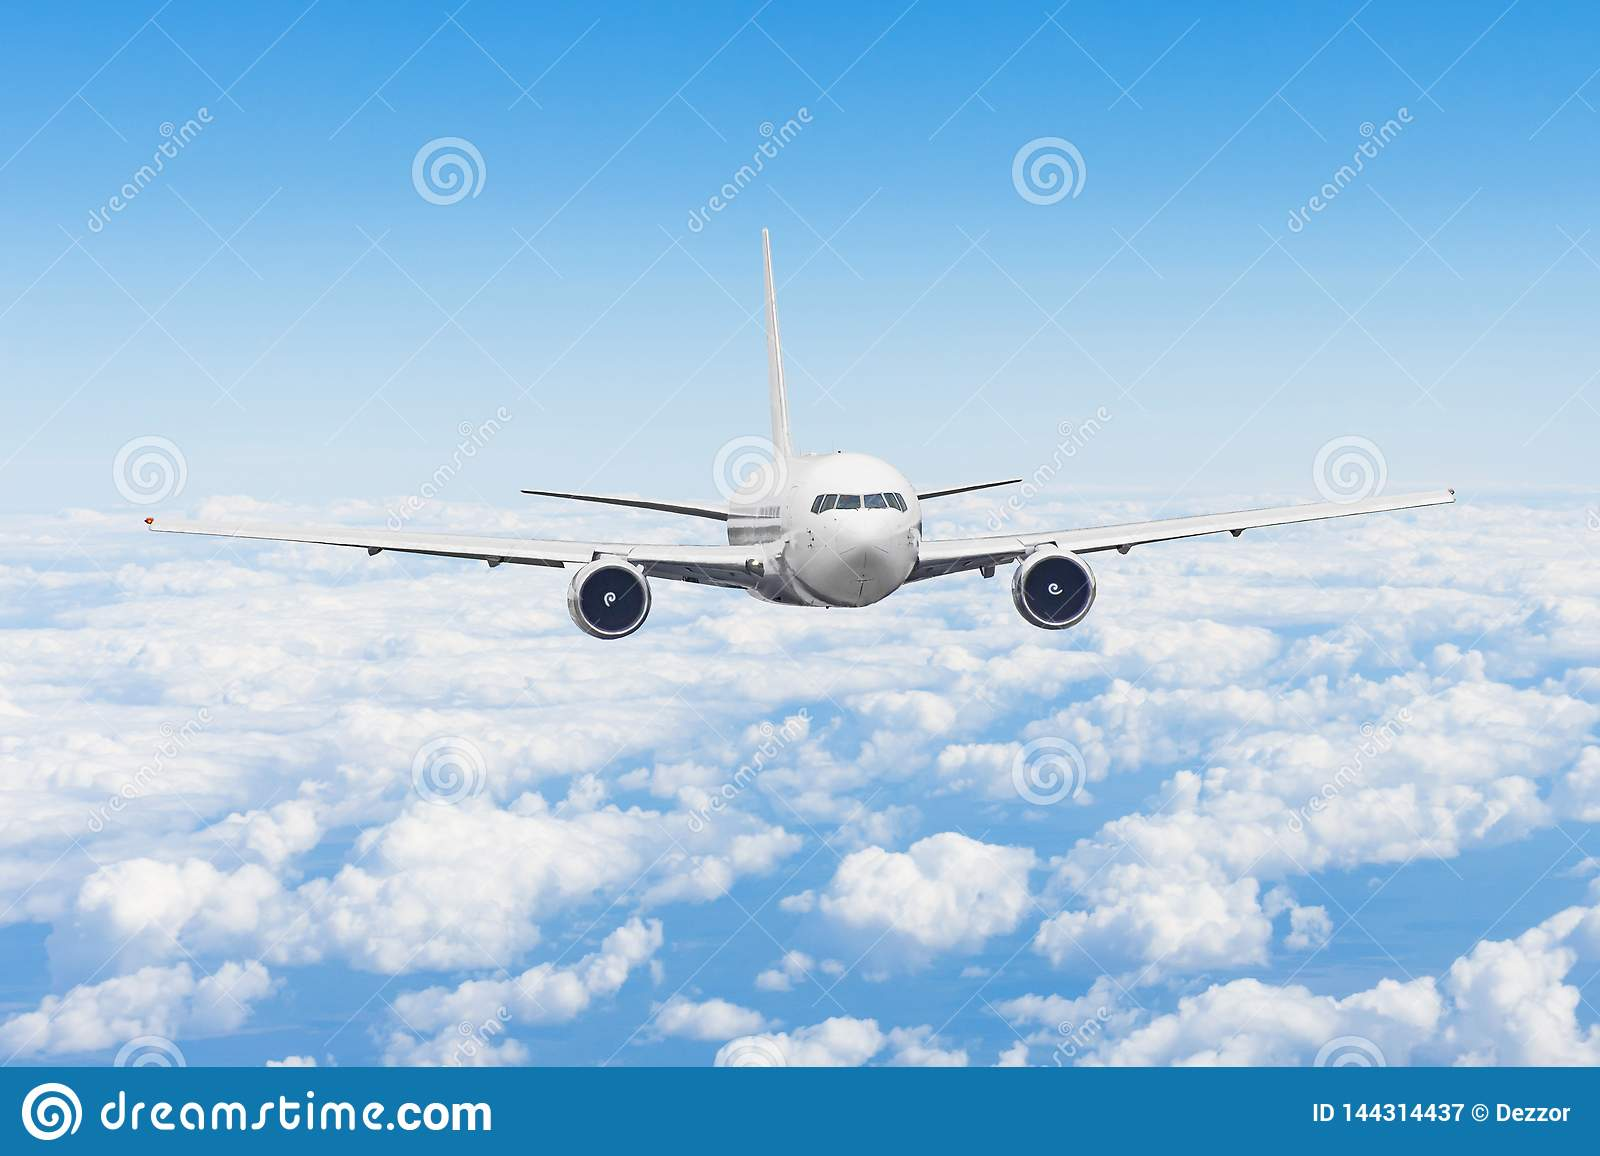 Aircraft fly high in the sky above the summer clouds